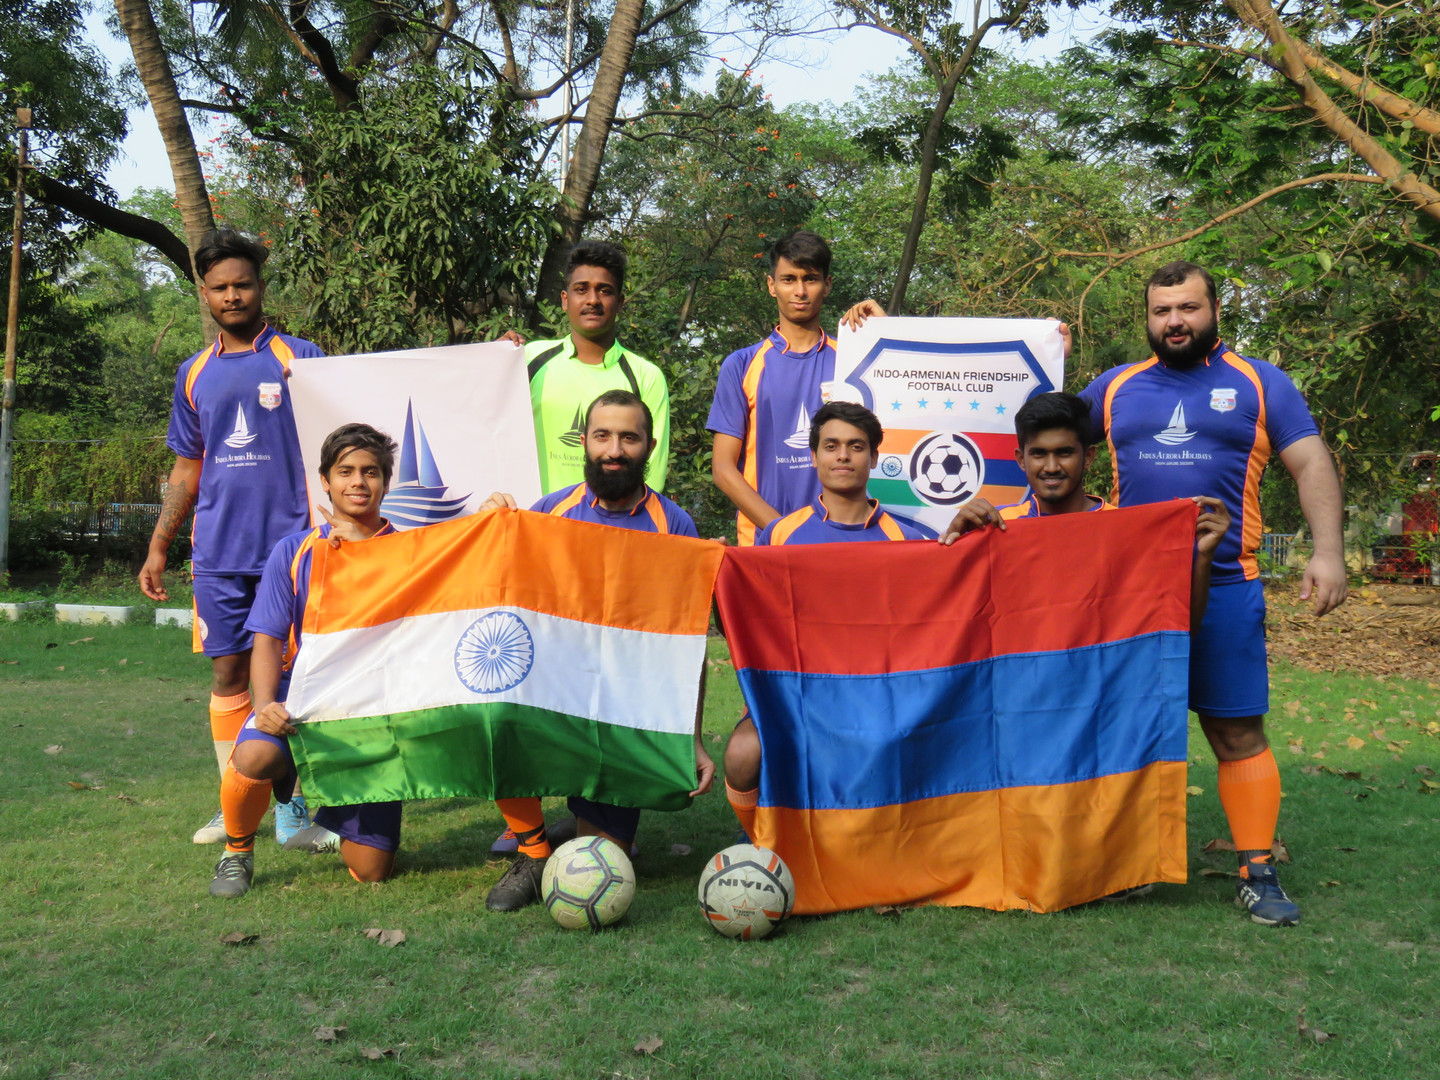 Team IAF with the flags of India and Armenia